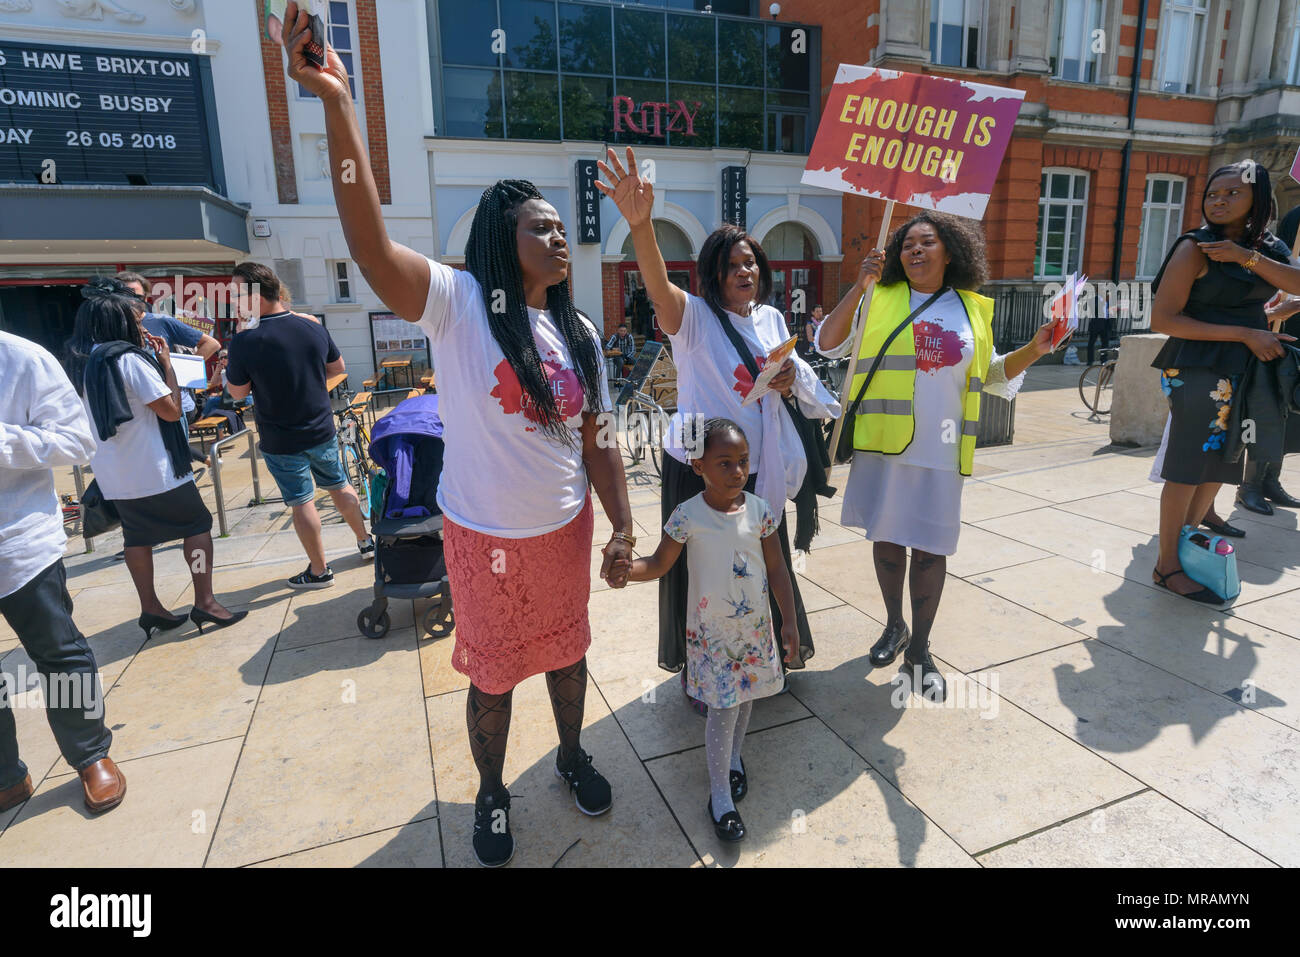 London, UK  26th May, 2018  People rasied their hands as the choir